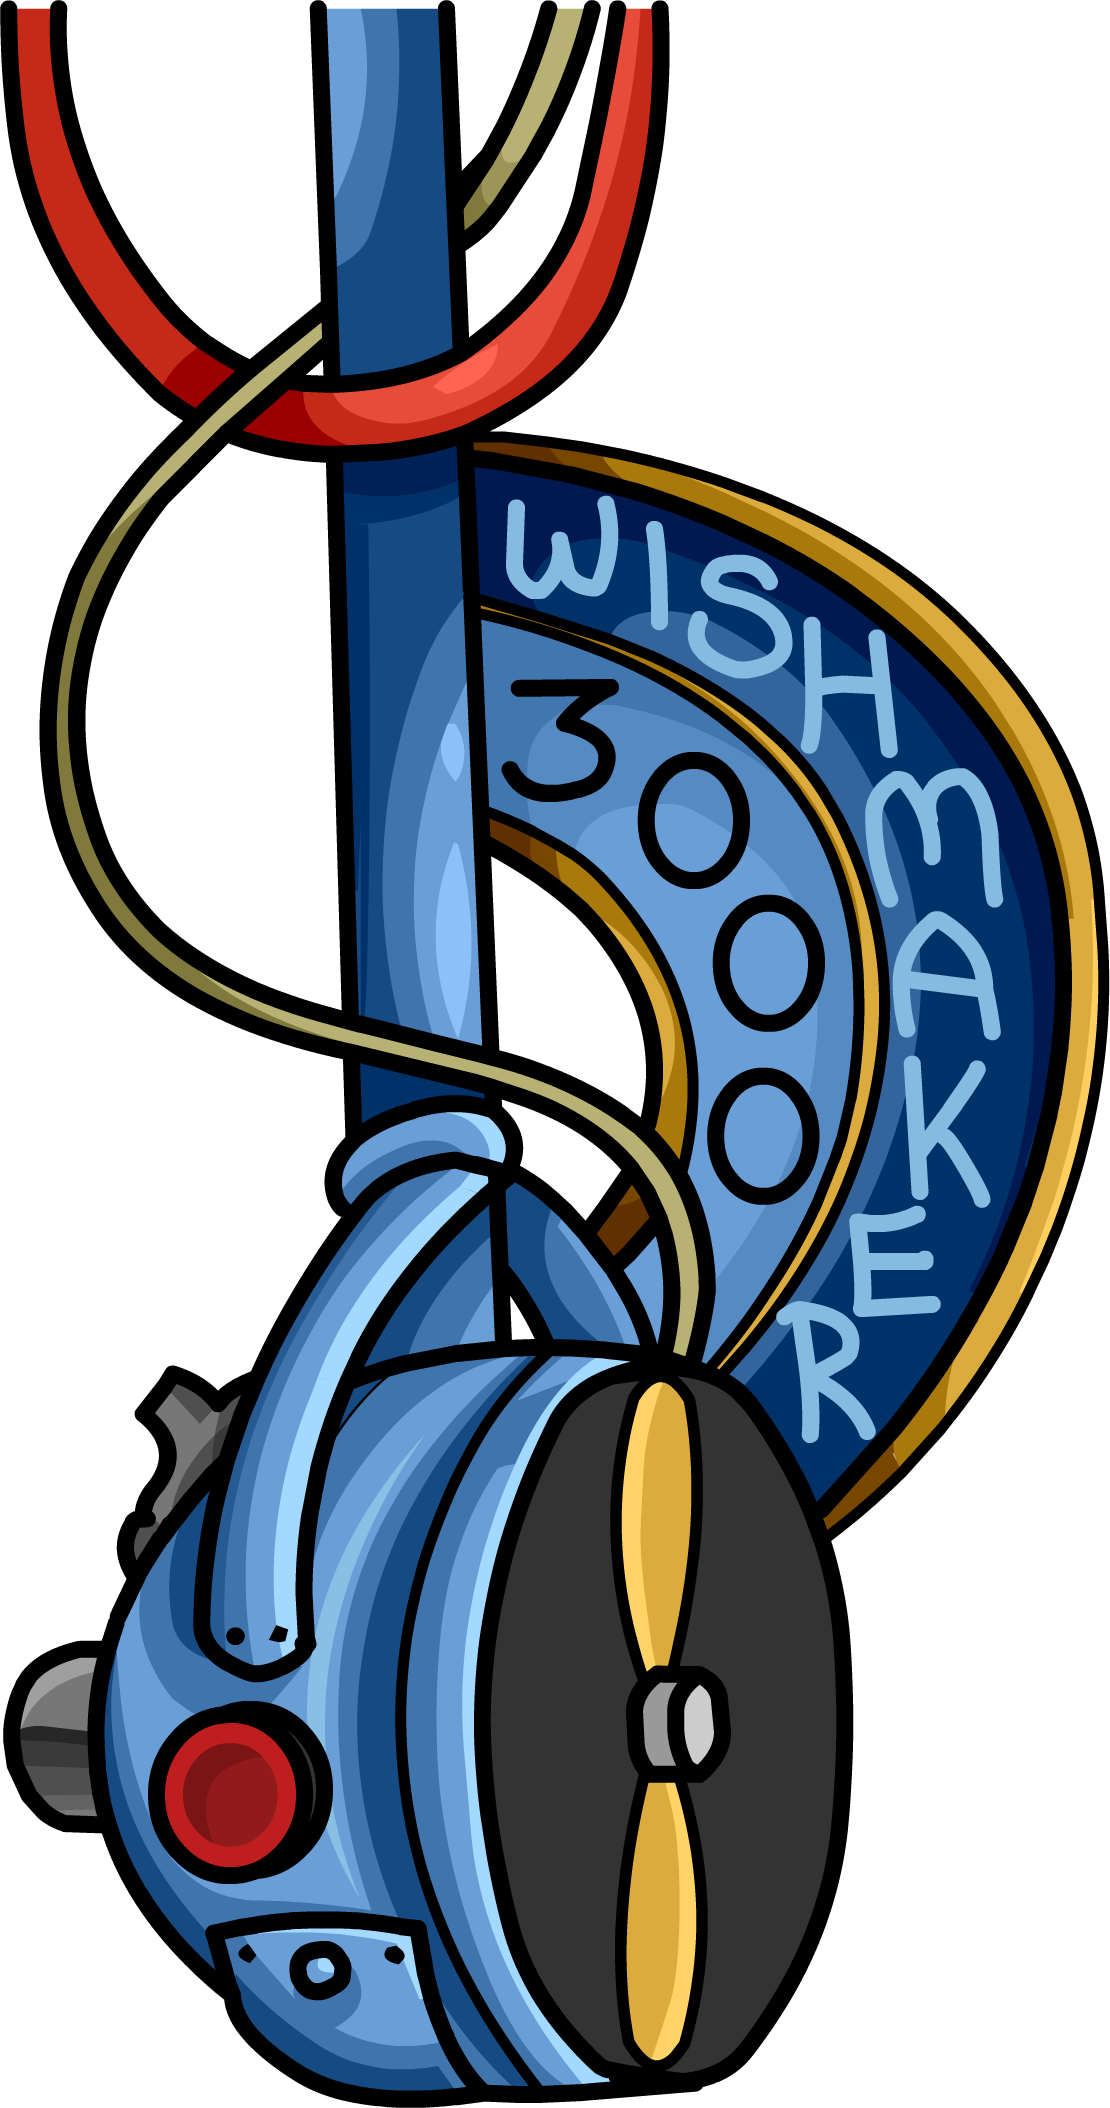 File:Wish maker 3000.PNG